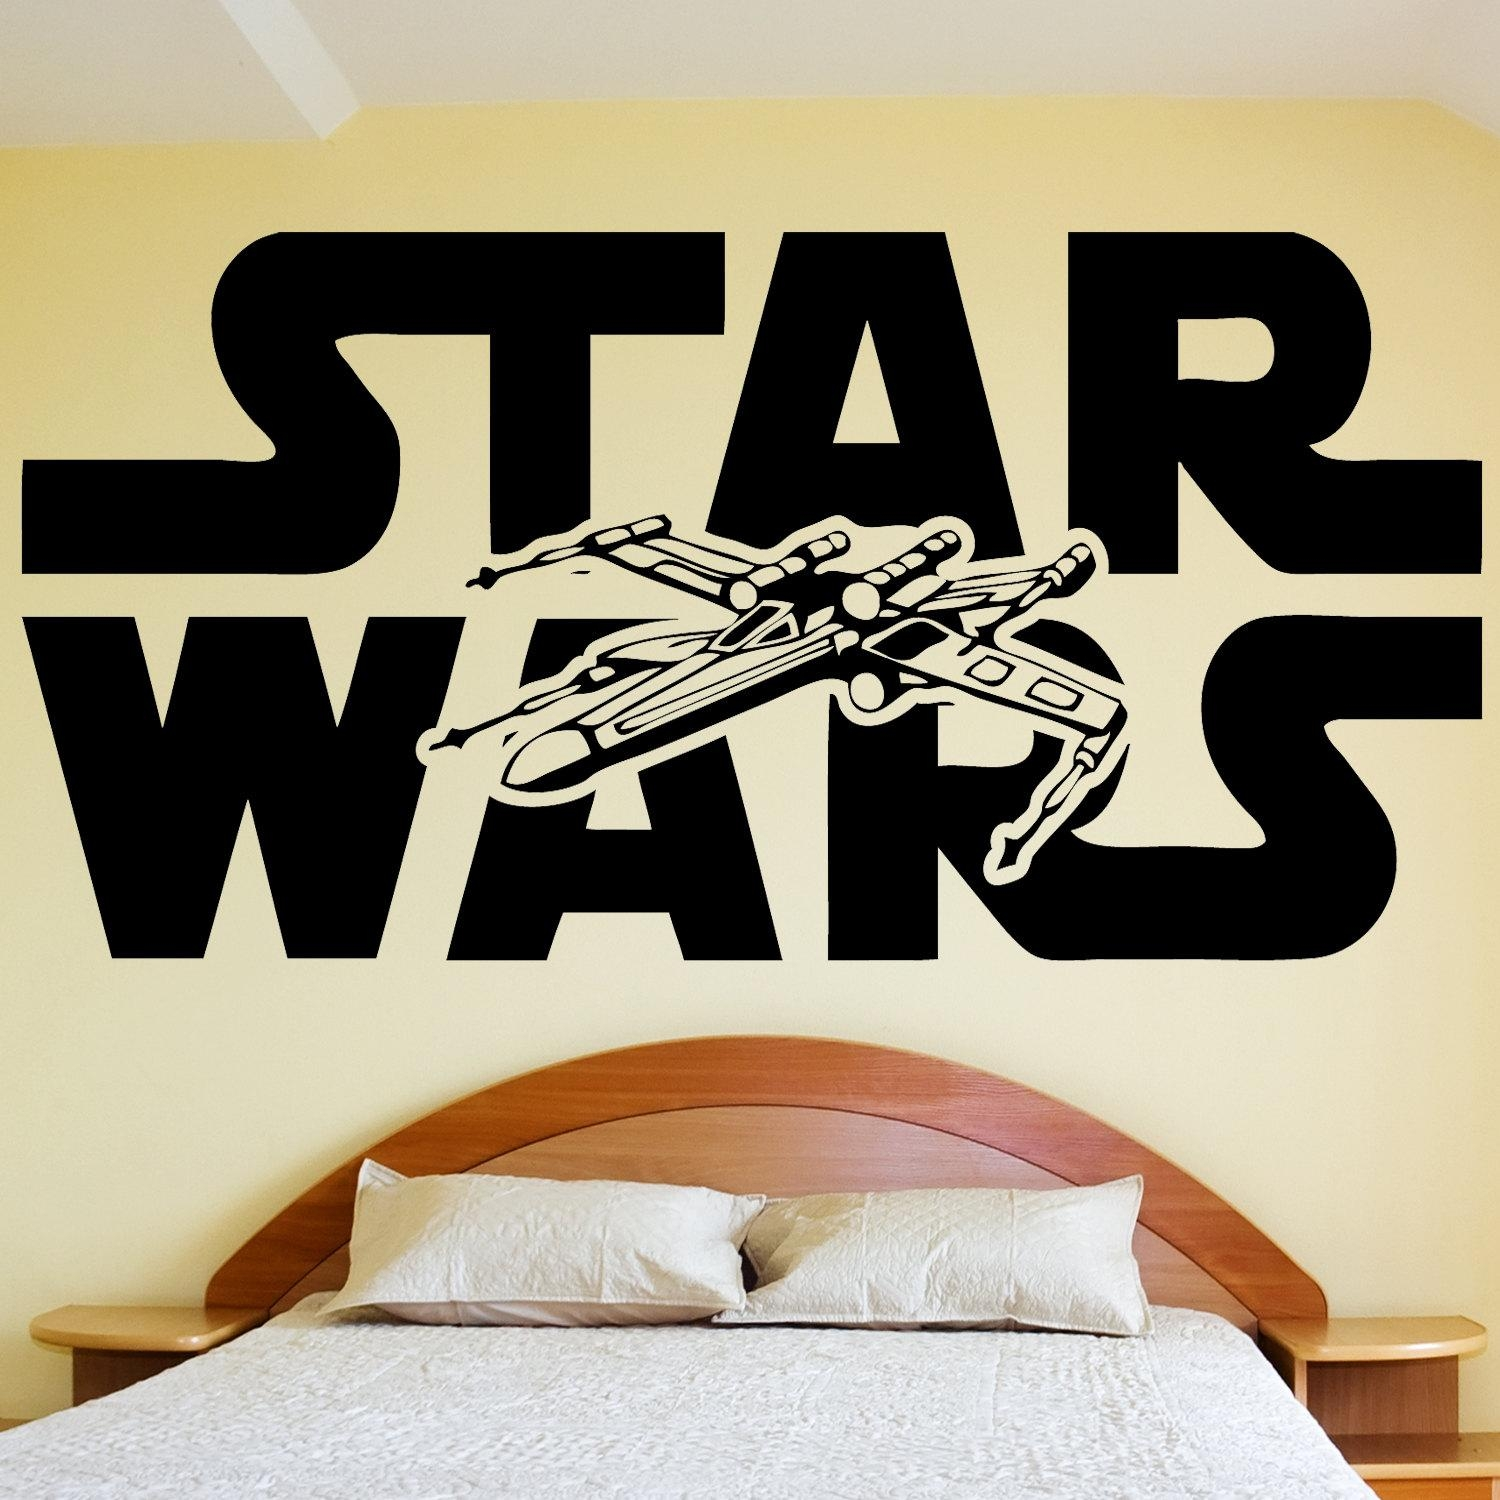 Blossom Wall Stickers 20 Choices Of Diy Star Wars Wall Art Wall Art Ideas